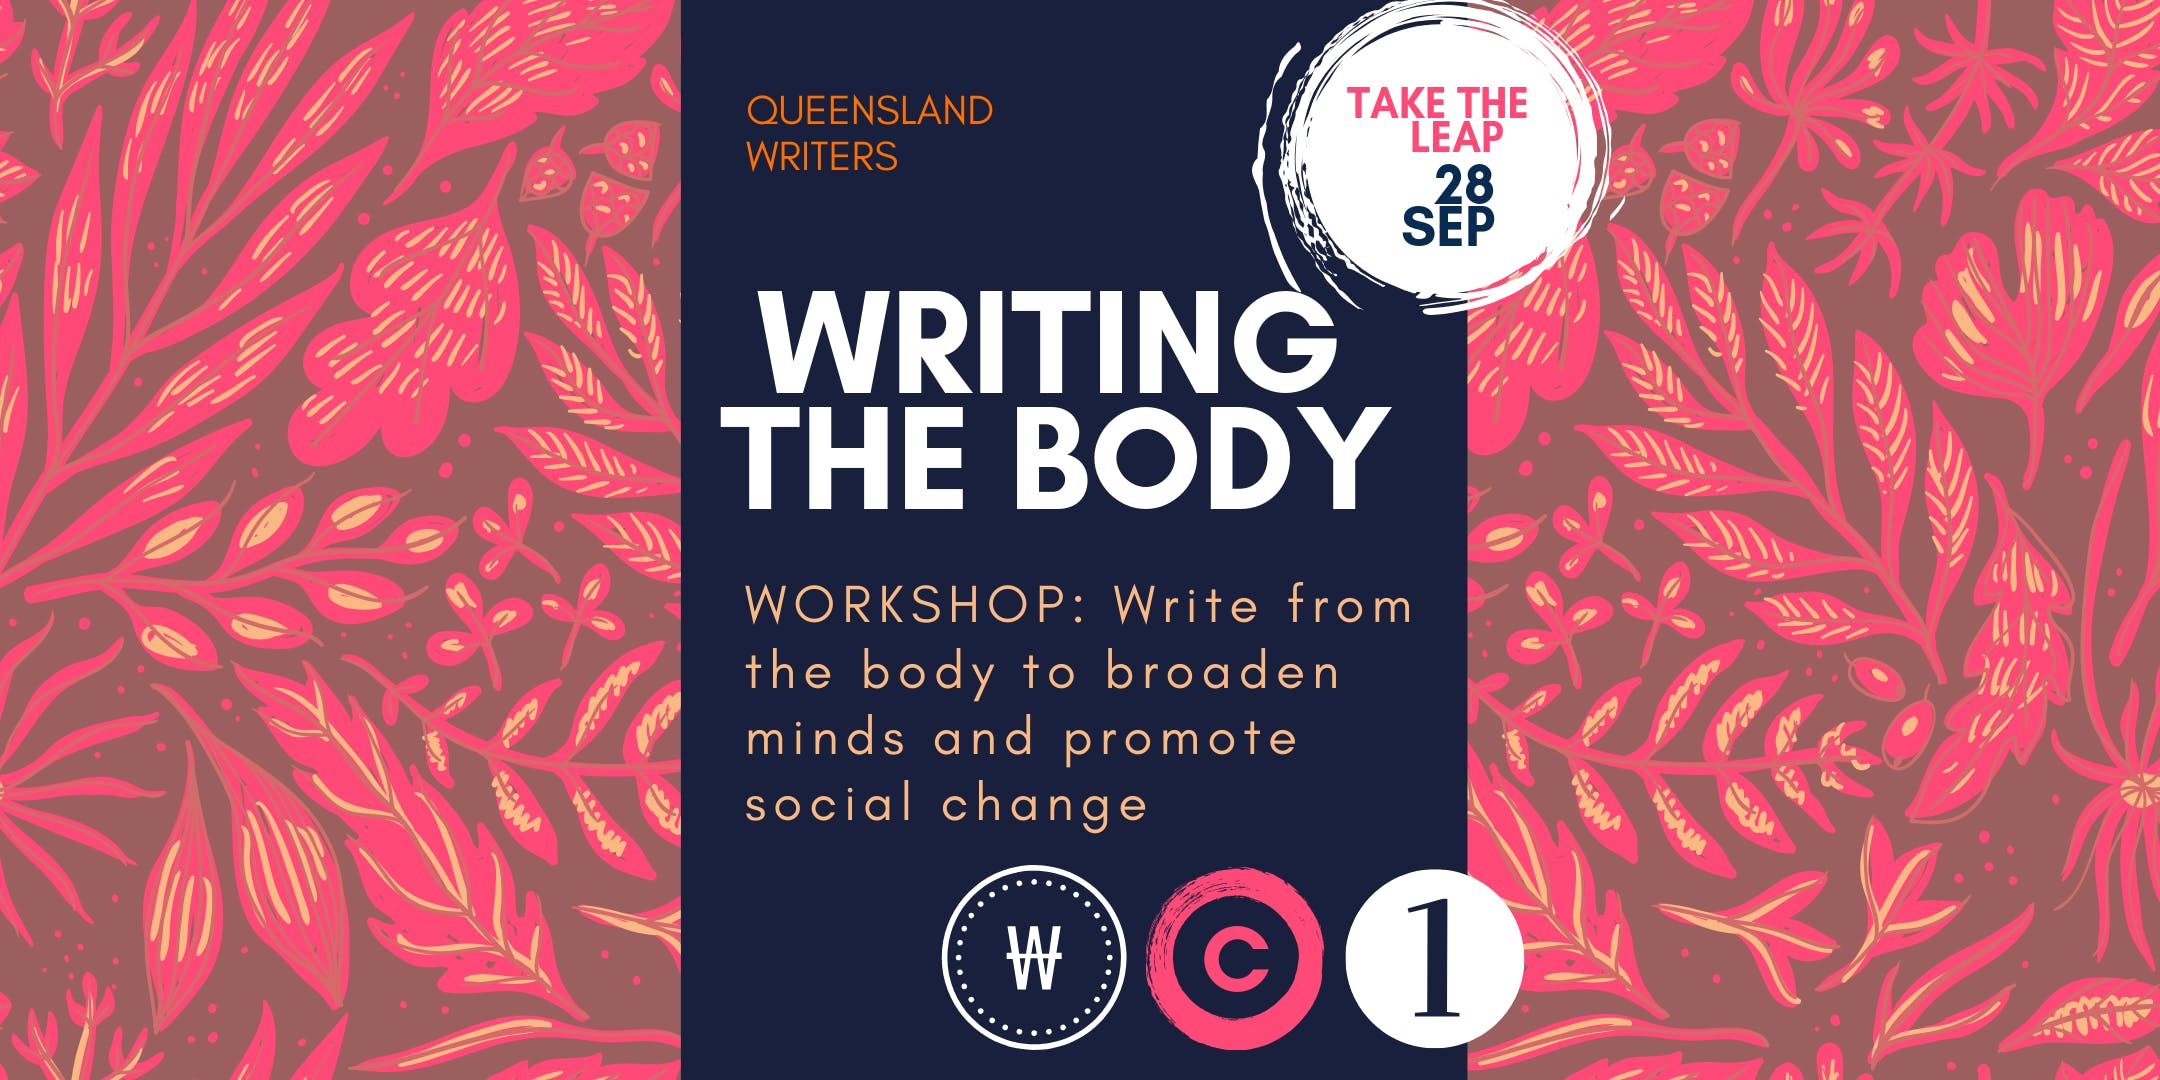 Writing The Body with Quinn Eades